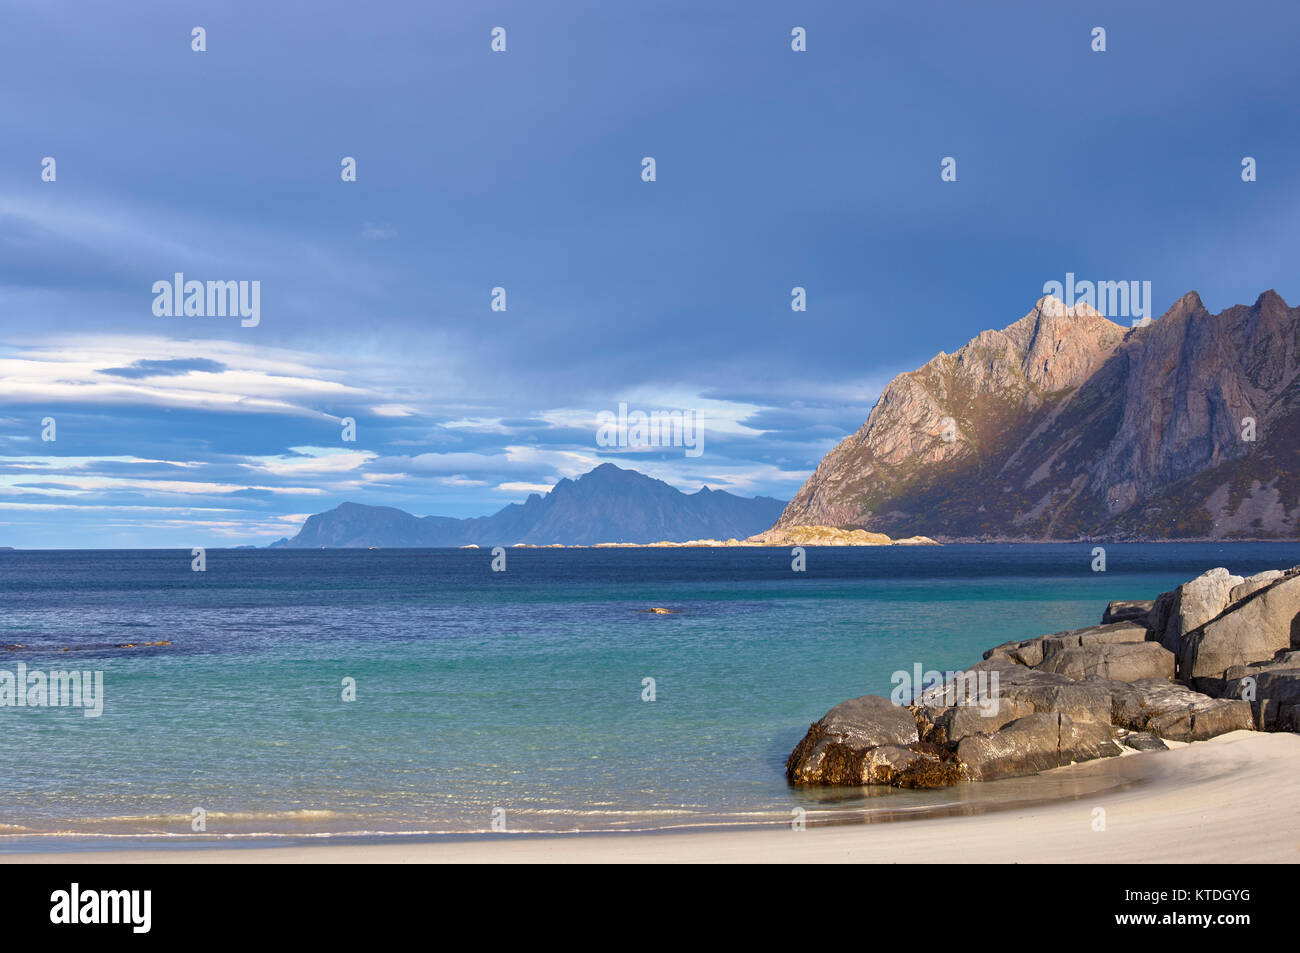 Beach scene at Hovden, Bo, Langoya, Nordland, Norway - Stock Image